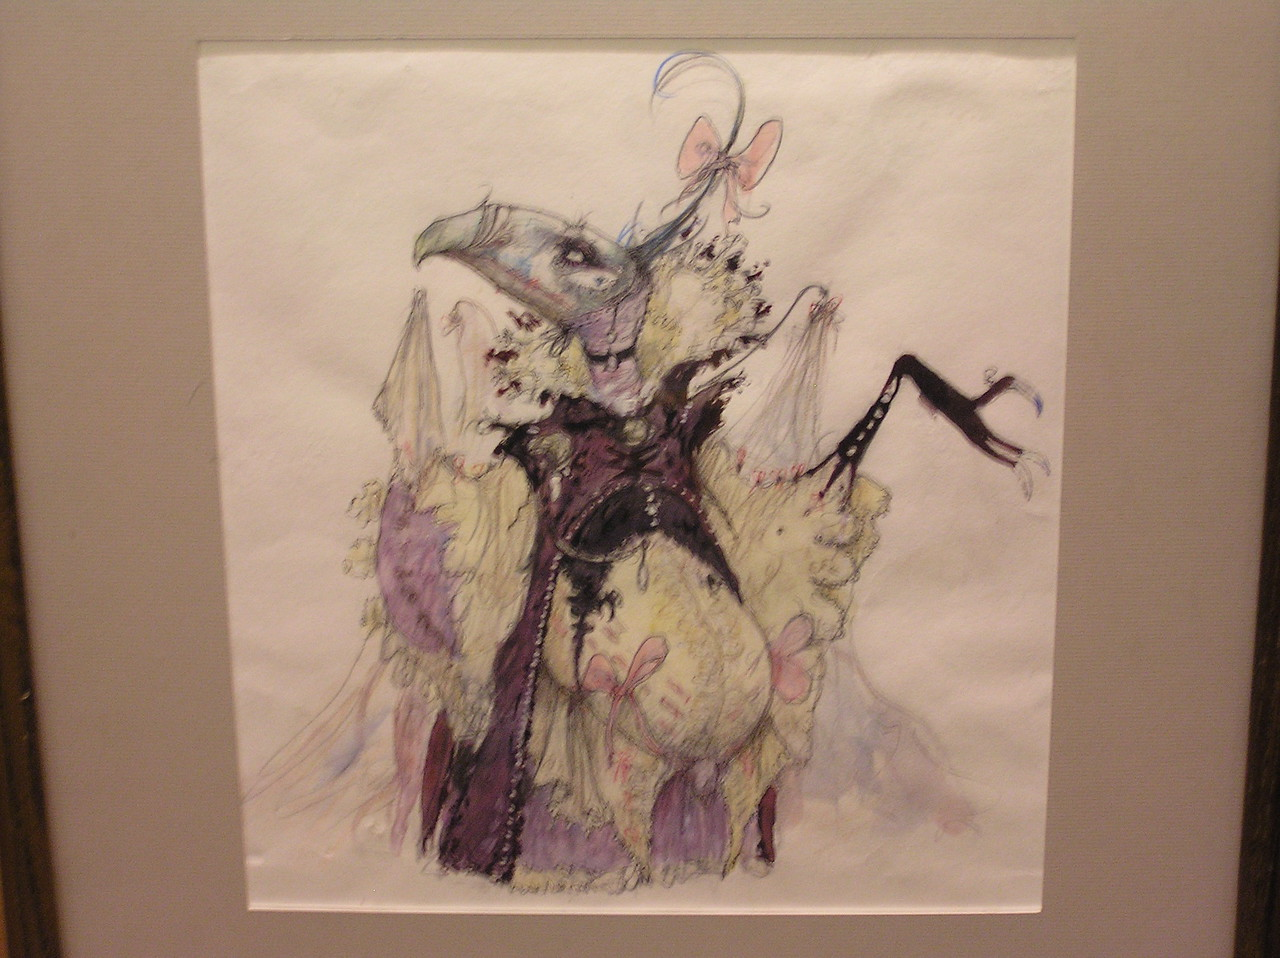 A Brian Froud sketch for a female Skeksis